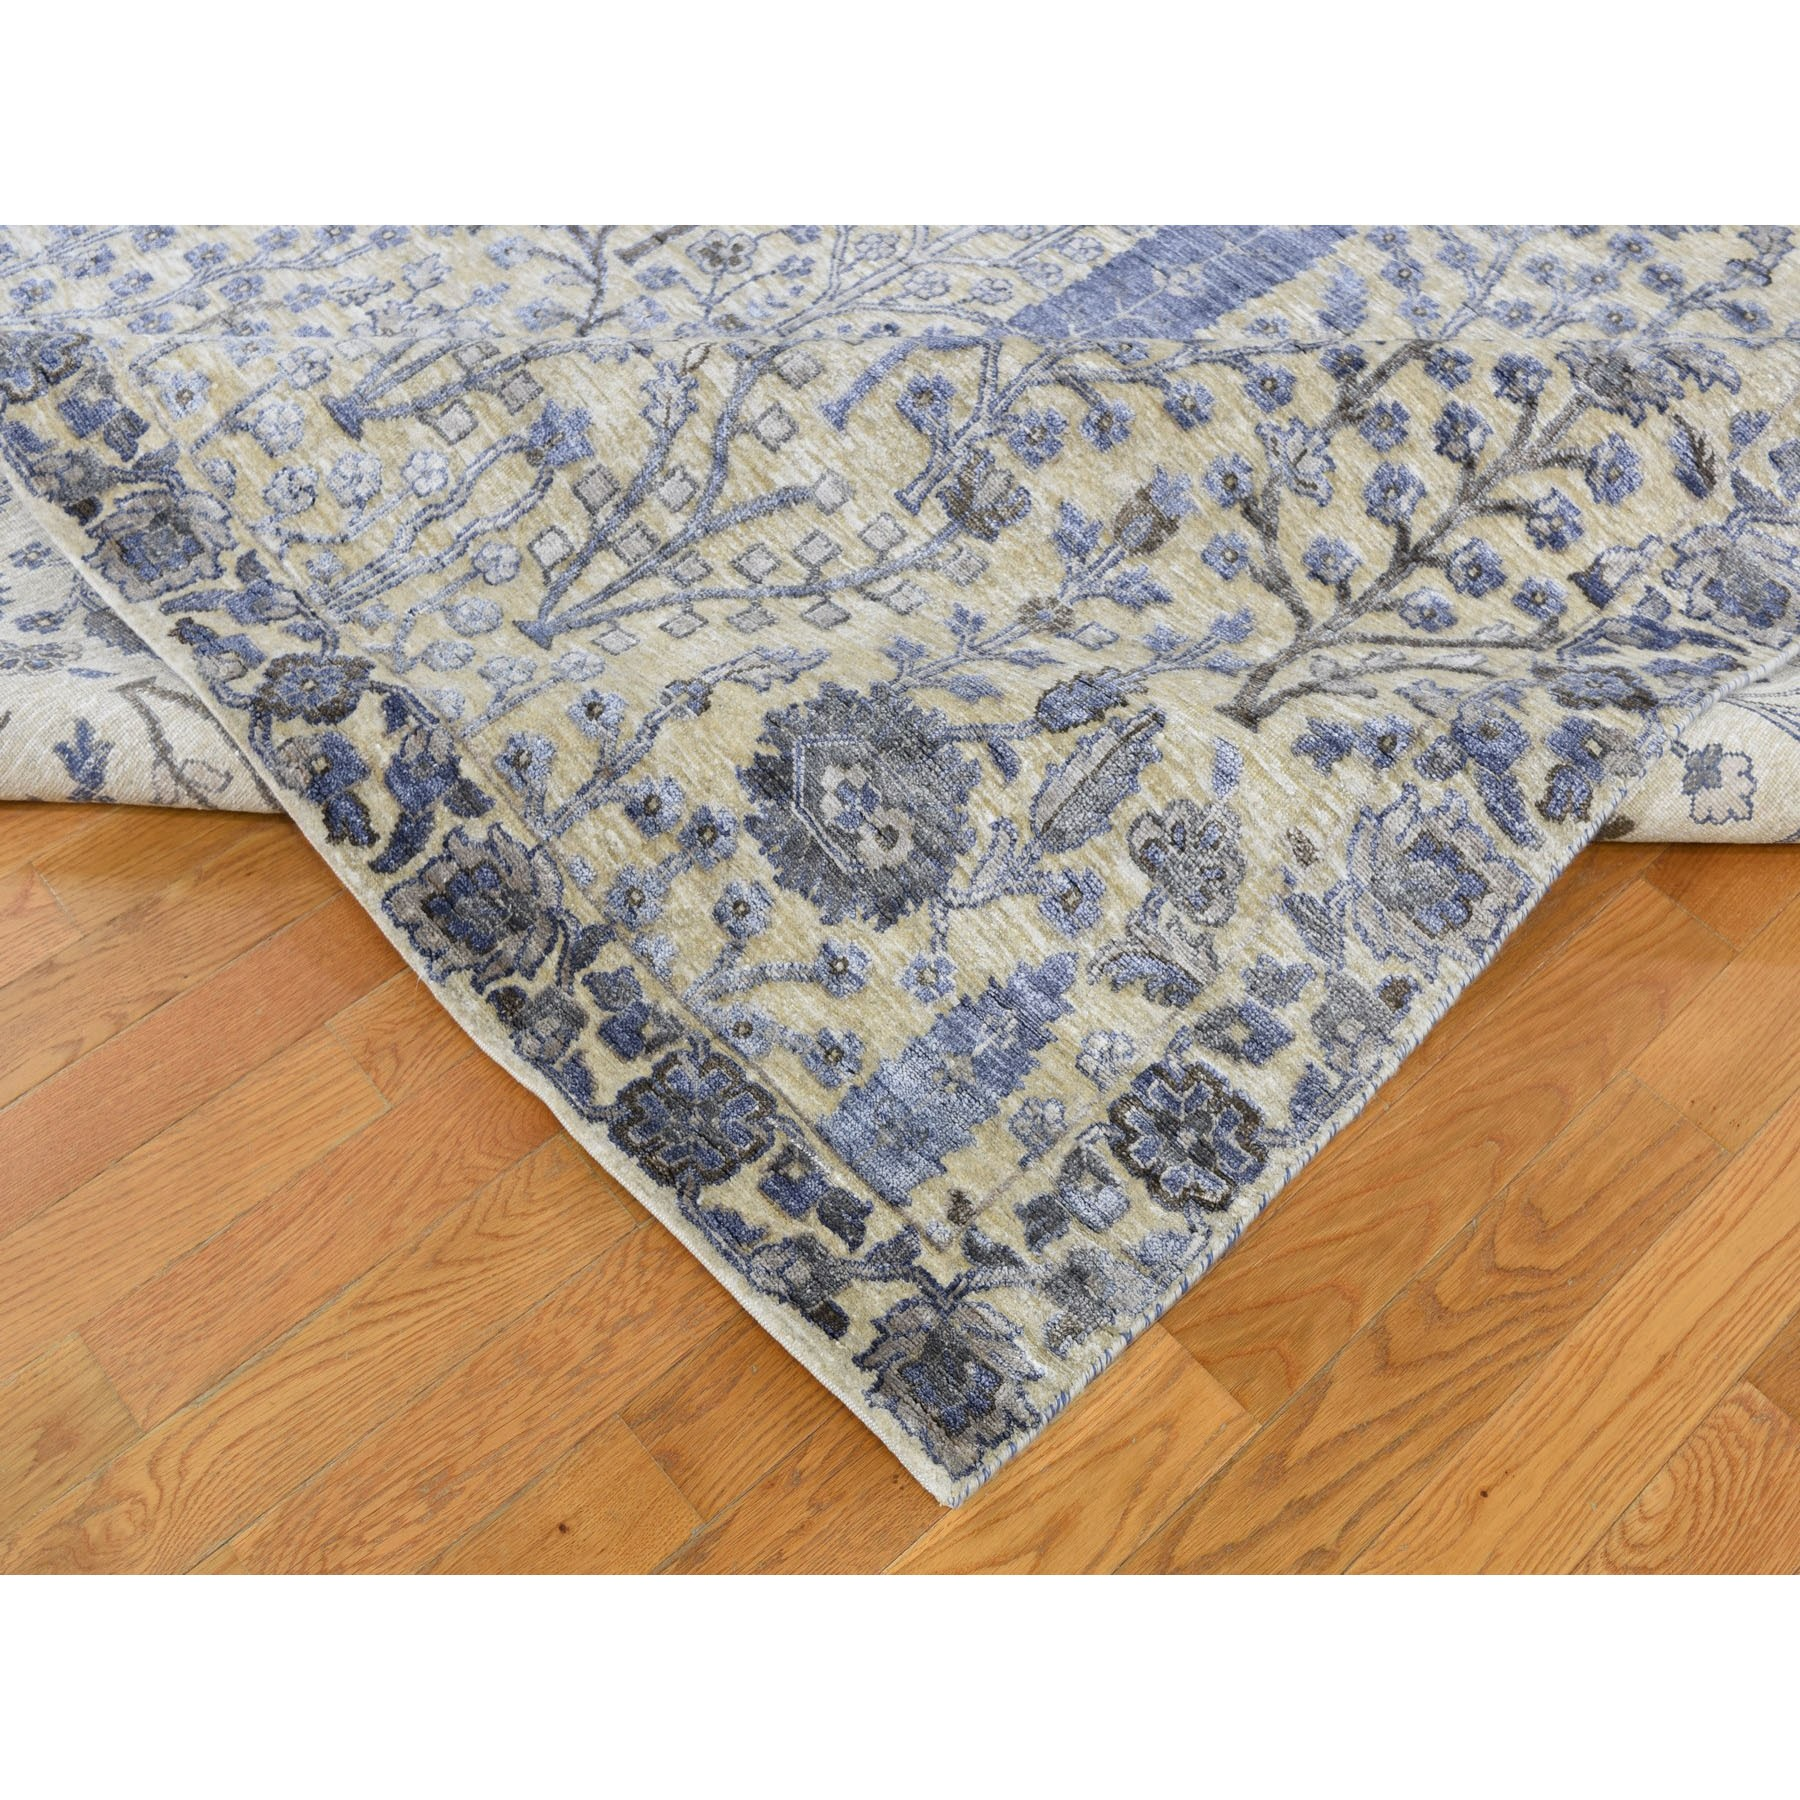 10-x14-2  Willow And Cypress Tree Design Silk With Textured Wool Hand Knotted Oriental Rug